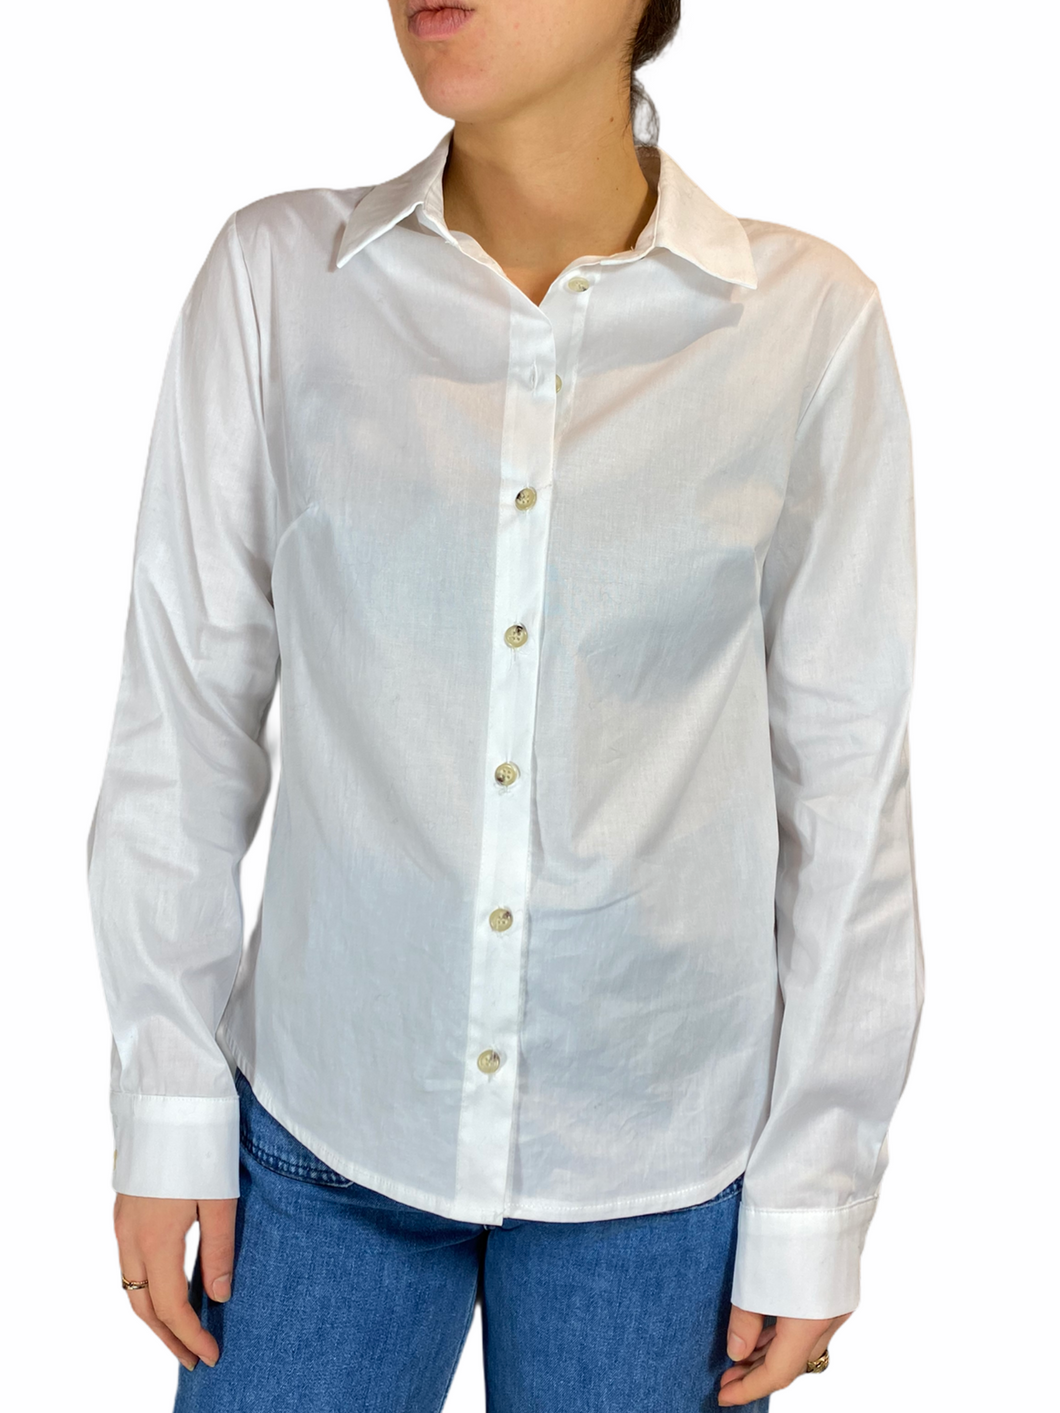 Basic White Blouse